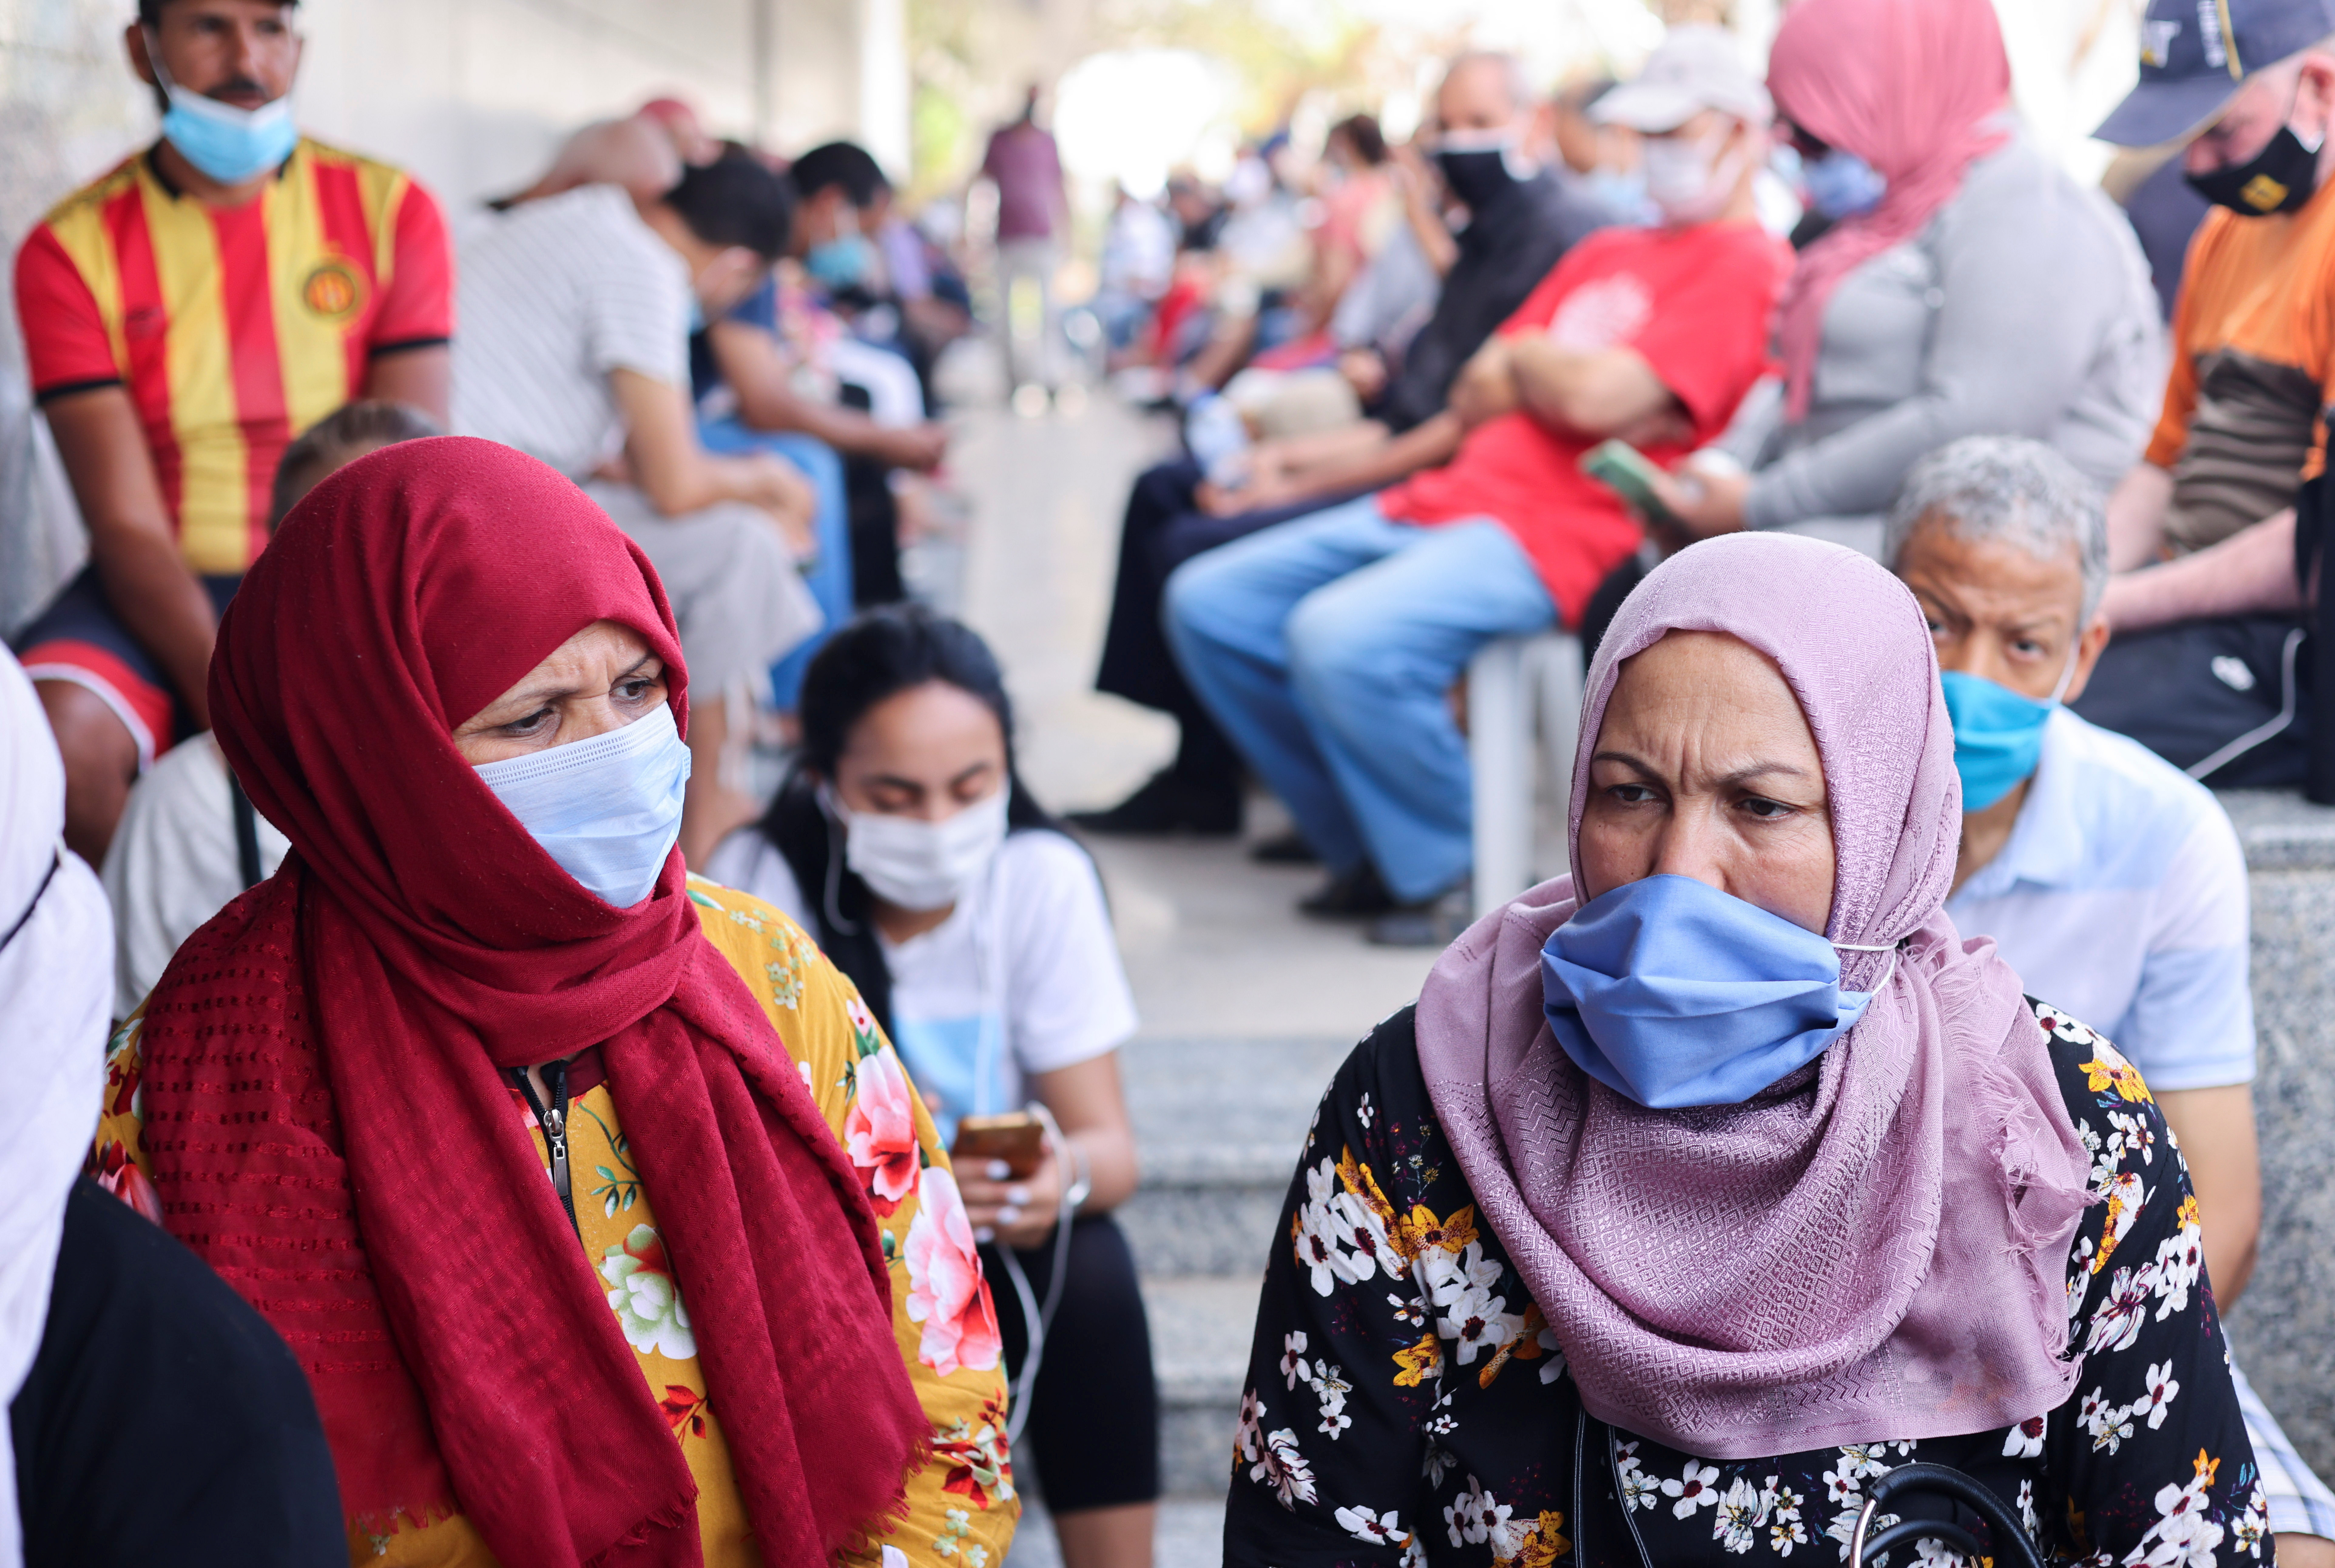 People wearing masks wait to receive the COVID-19 vaccine at a vaccination center in Tunis, Tunisia August 1, 2021. REUTERS/Ammar Awad